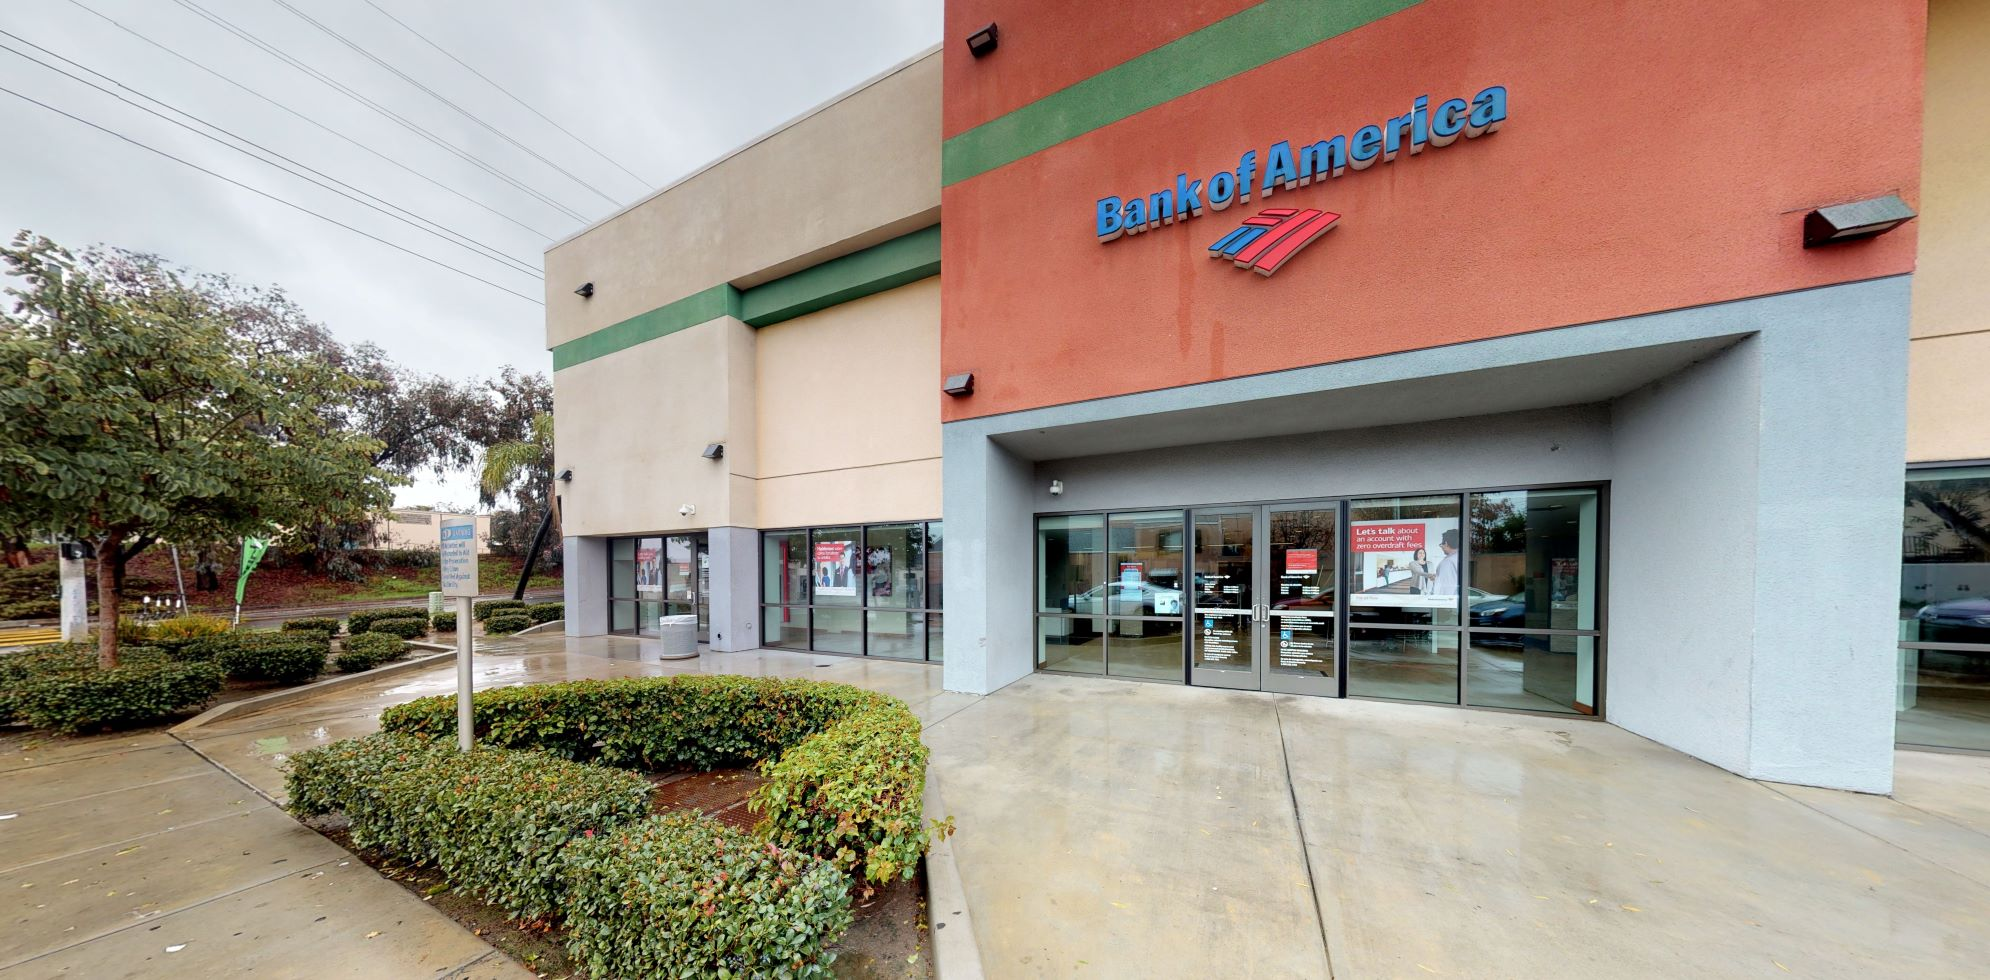 Bank of America financial center with walk-up ATM | 3582 National Ave, San Diego, CA 92113